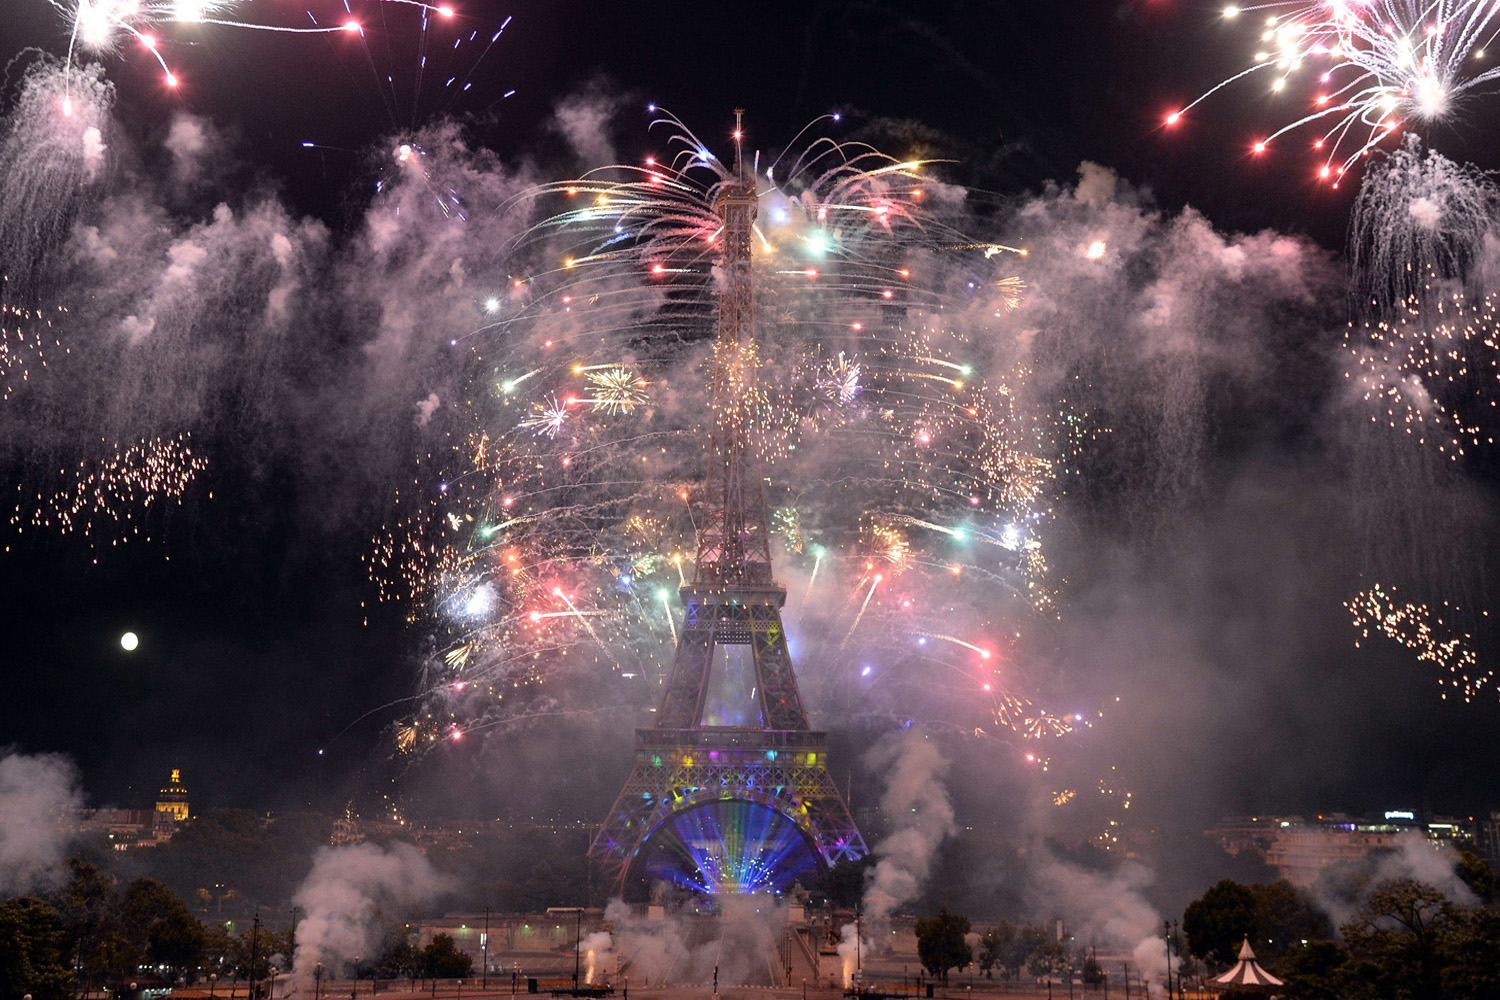 Fireworks burst around the Eiffel Tower as part of France's annual Bastille Day celebrations in Paris on July 14, 2014.